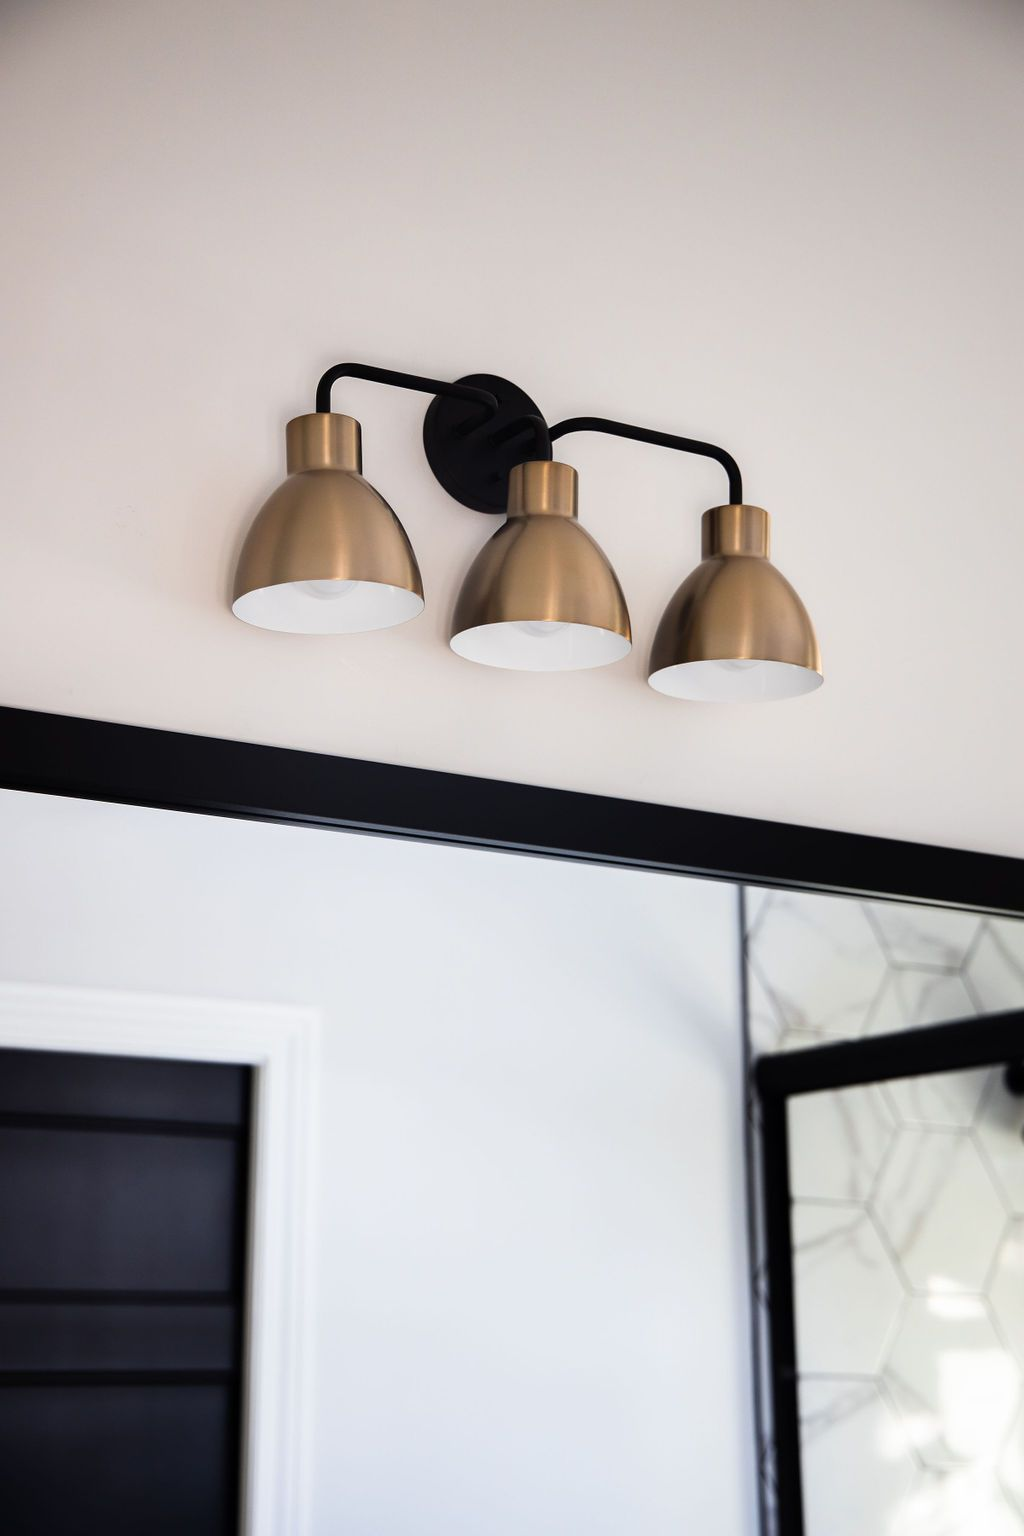 Photo of Black and brass bathroom lighting